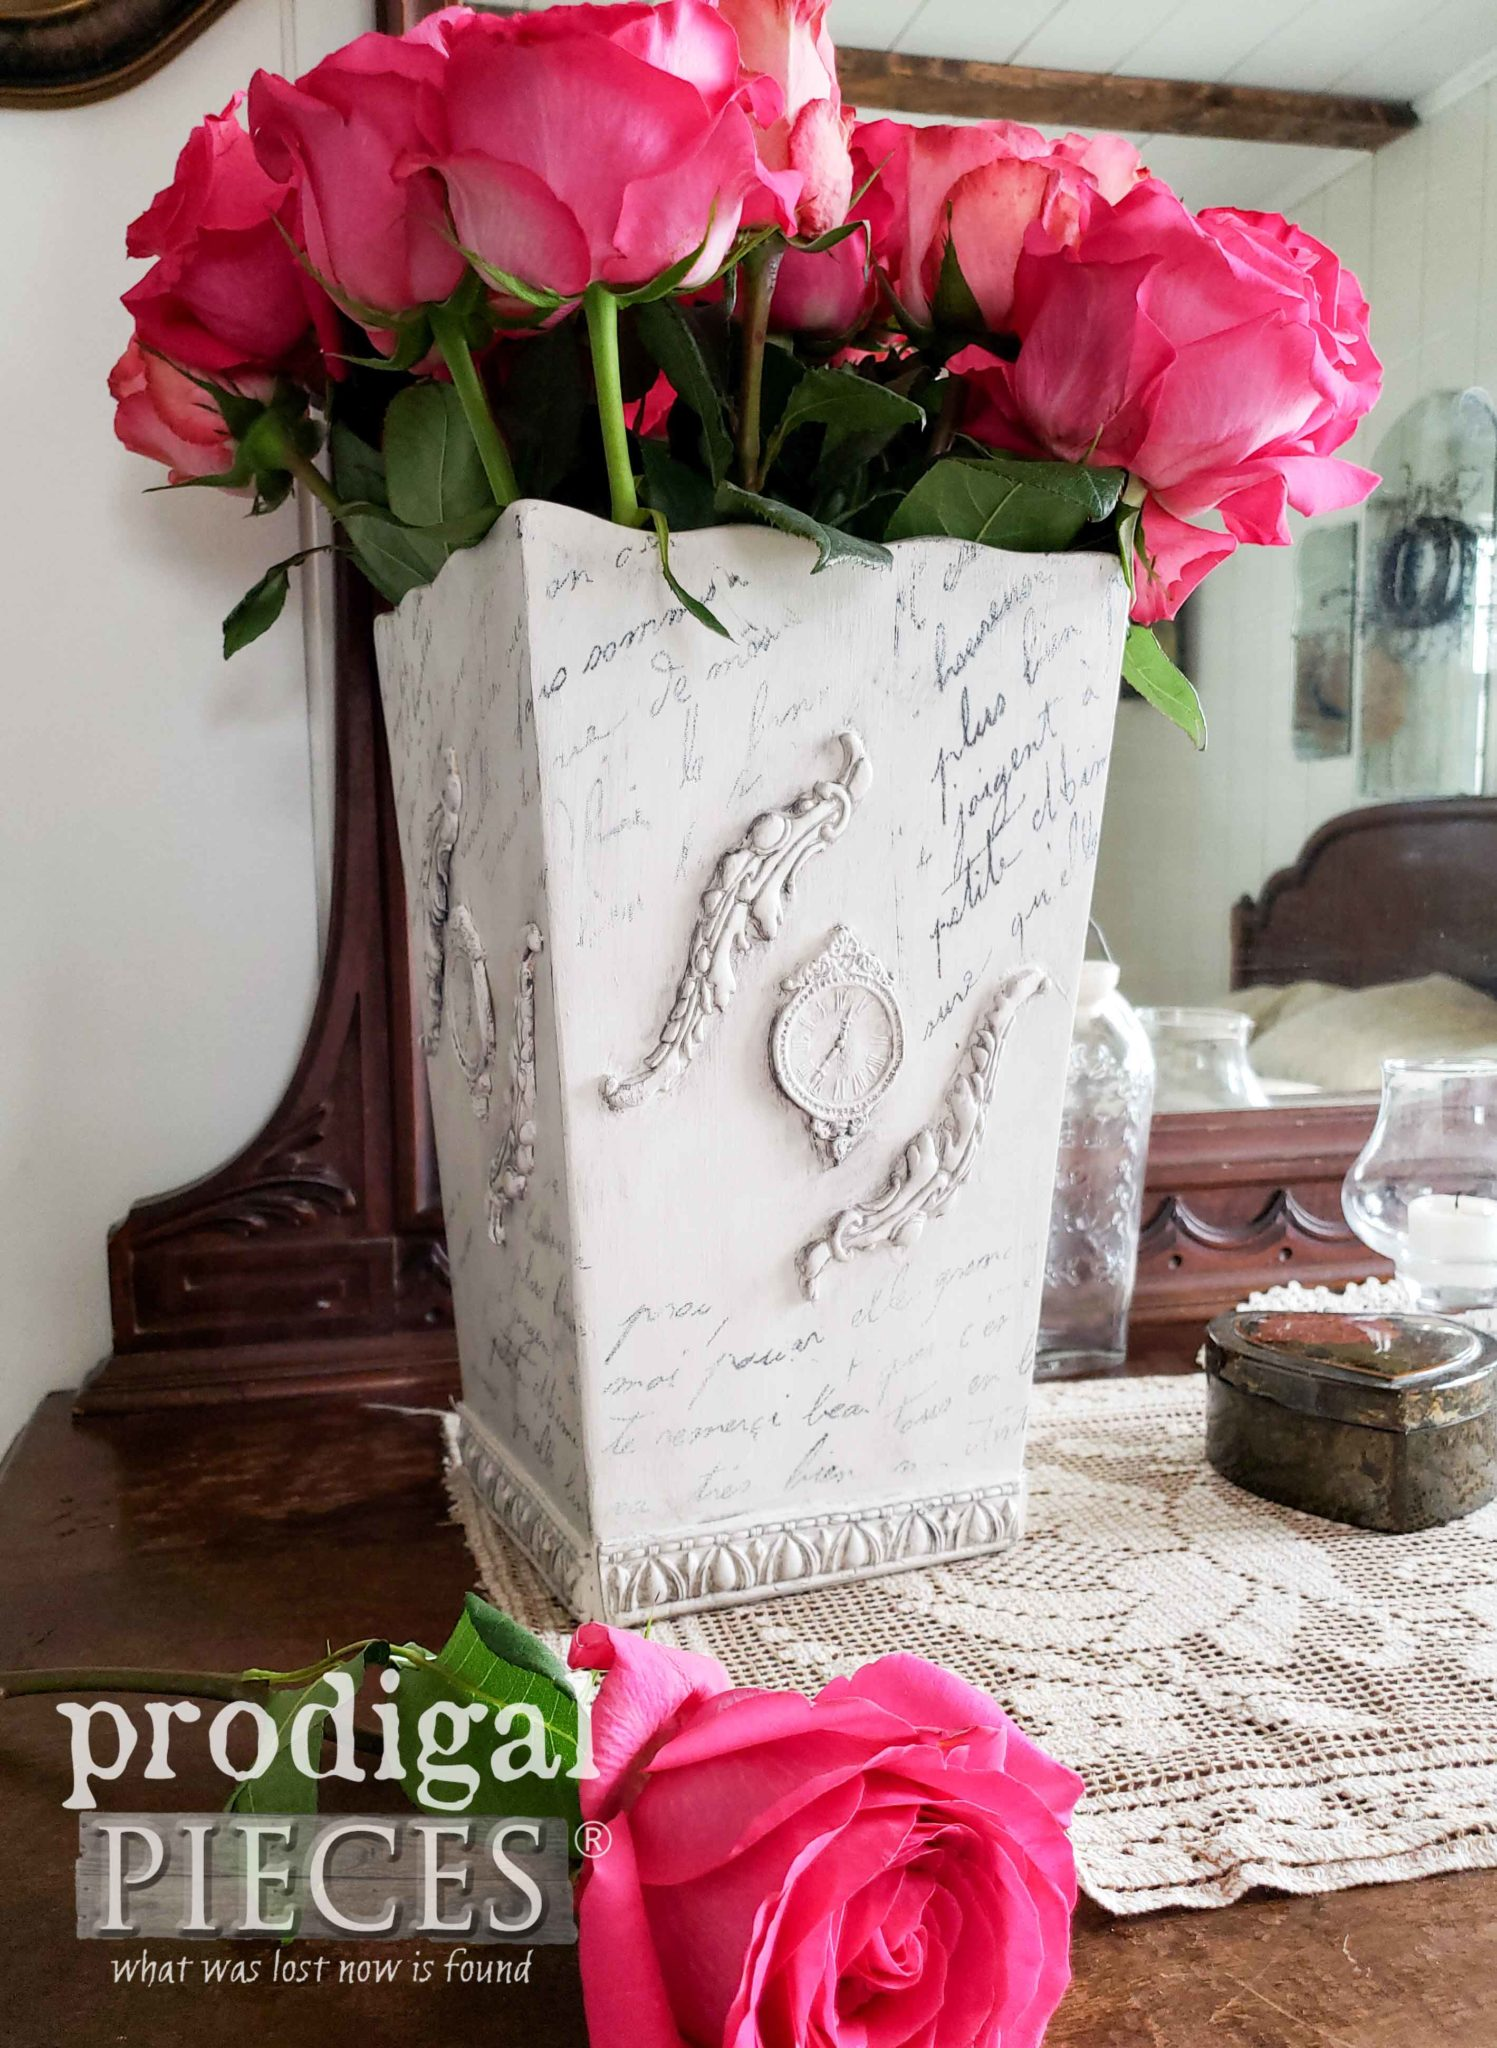 DIY French Script Vase with Homemade Transfers by Larissa of Prodigal Pieces | prodigalpieces.com #prodigalpieces #shabby chic #diy #home #vintage #homedecor